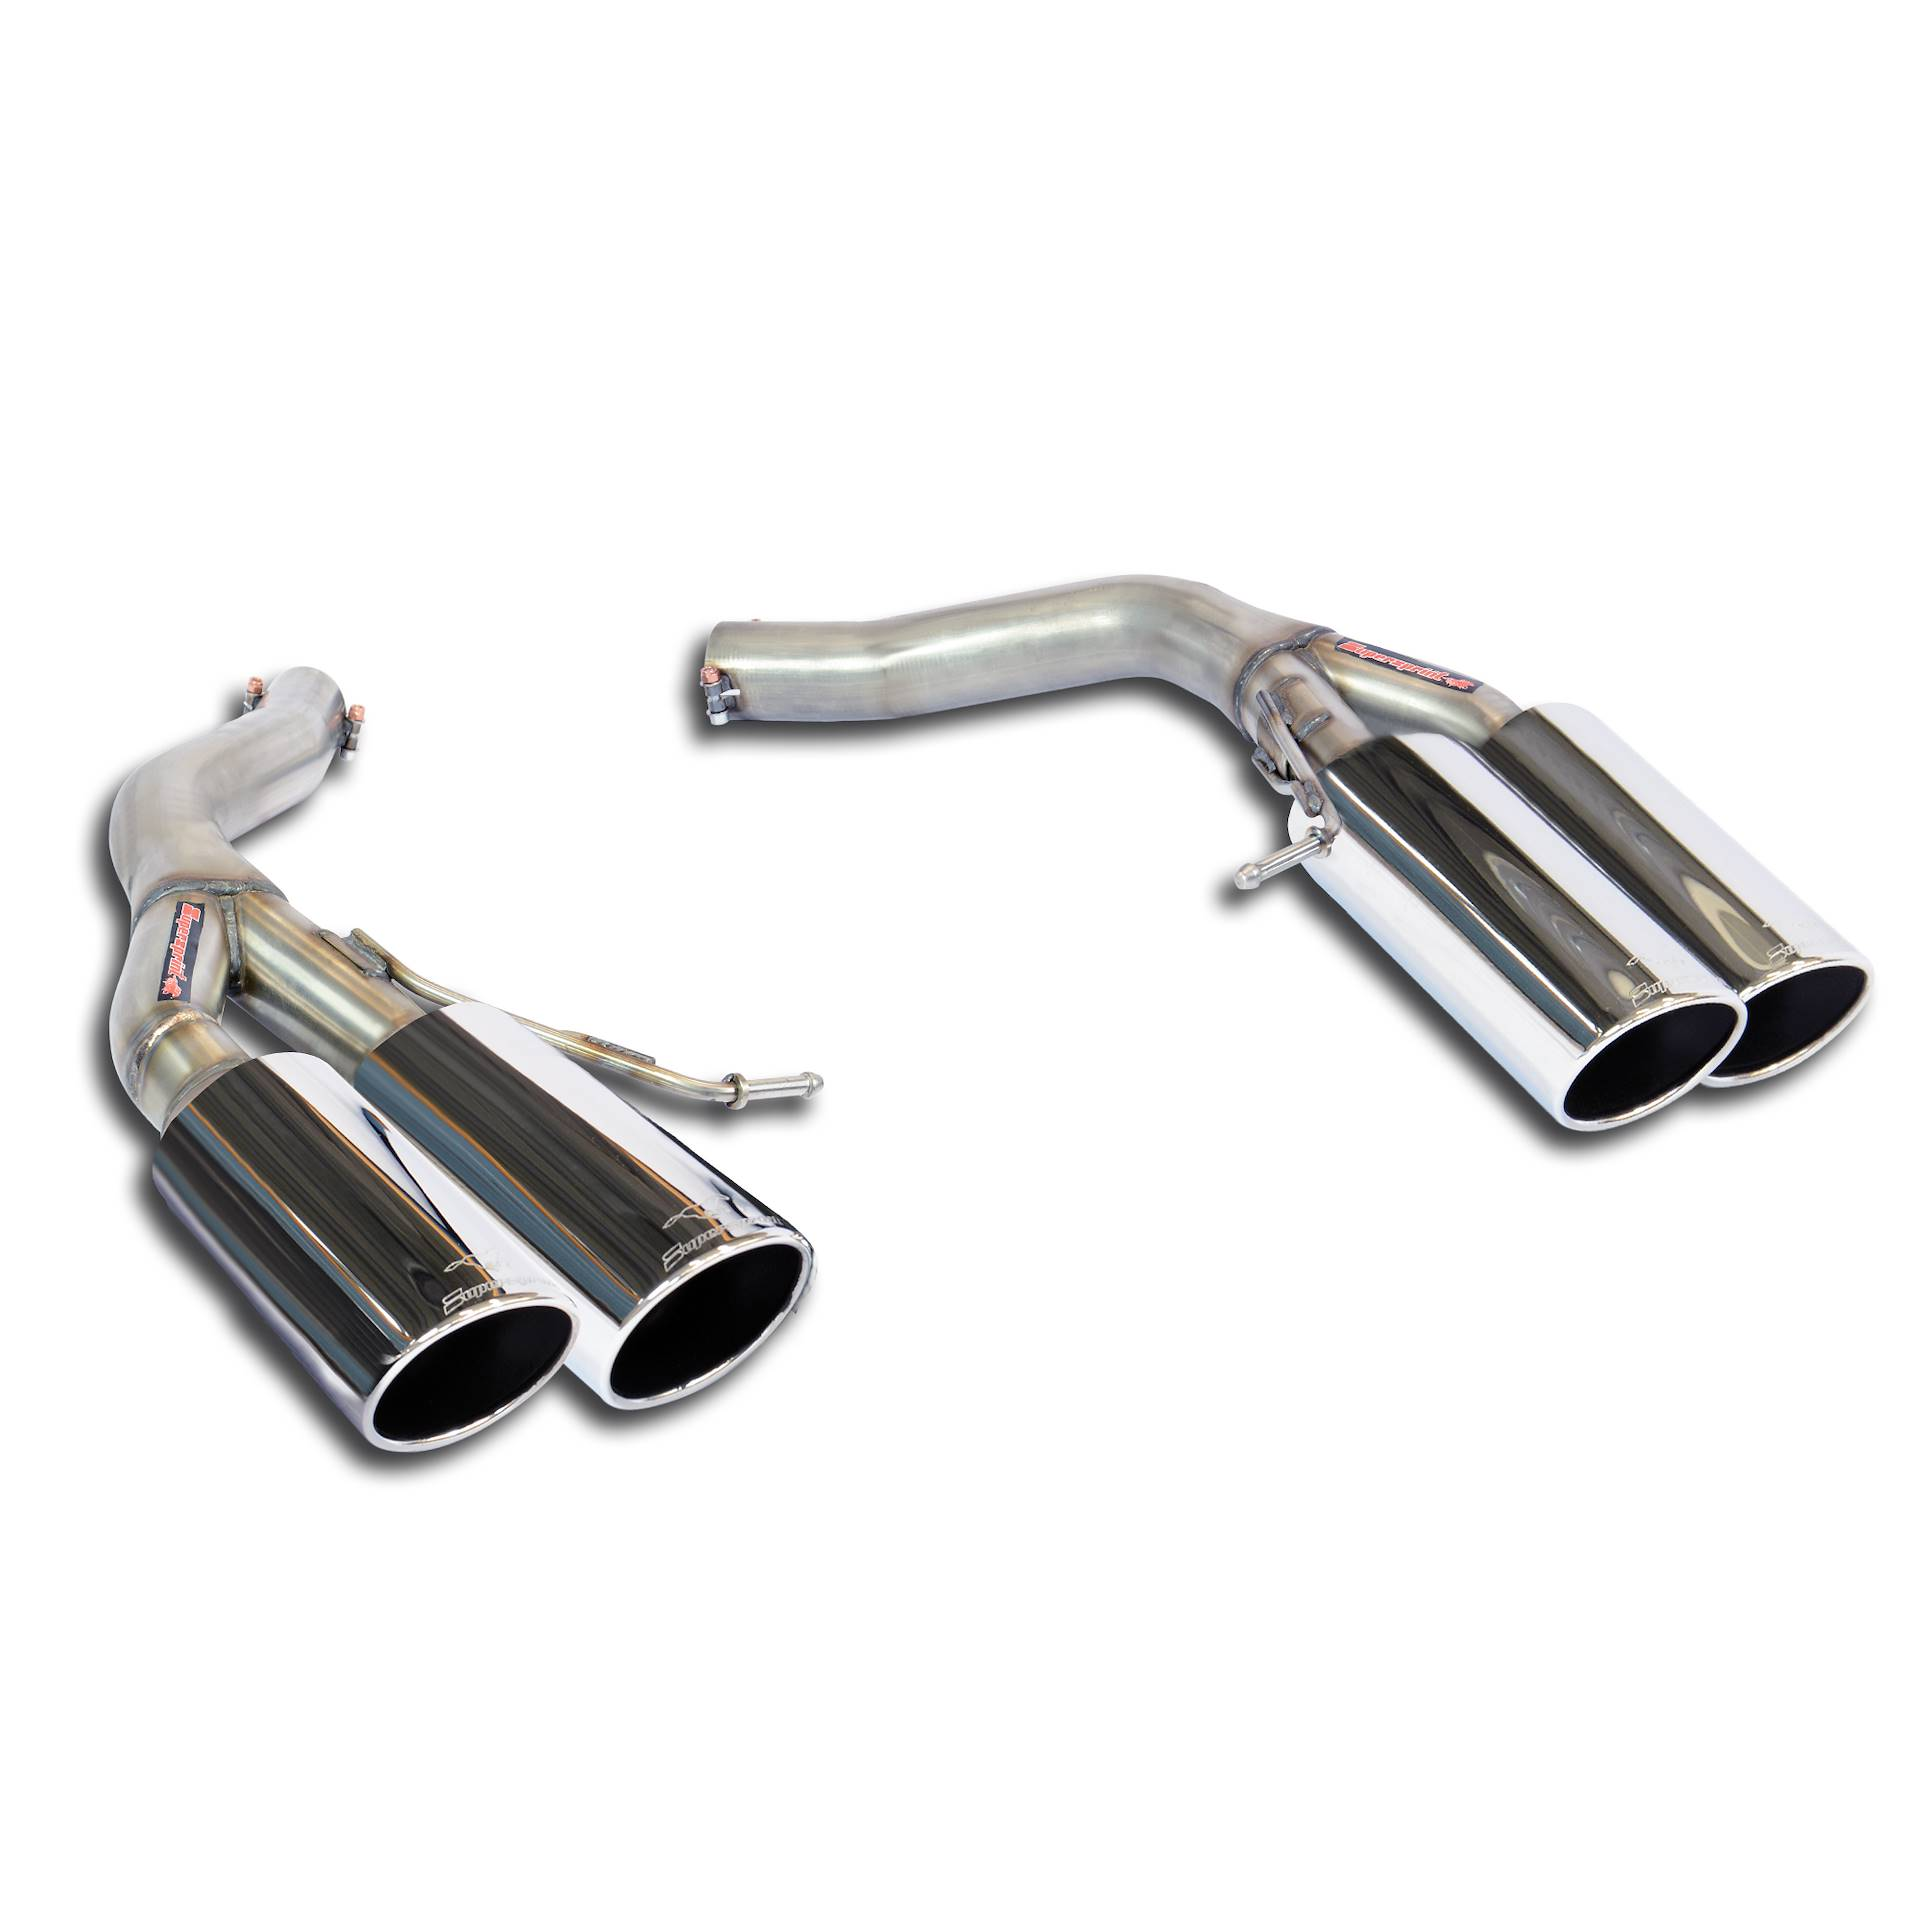 BMW - BMW F01 / F02 740i (N55 Engine) '09 -> Rear pipes Right OO90 - Left OO90<br>(Muffler delete), performance exhaust systems